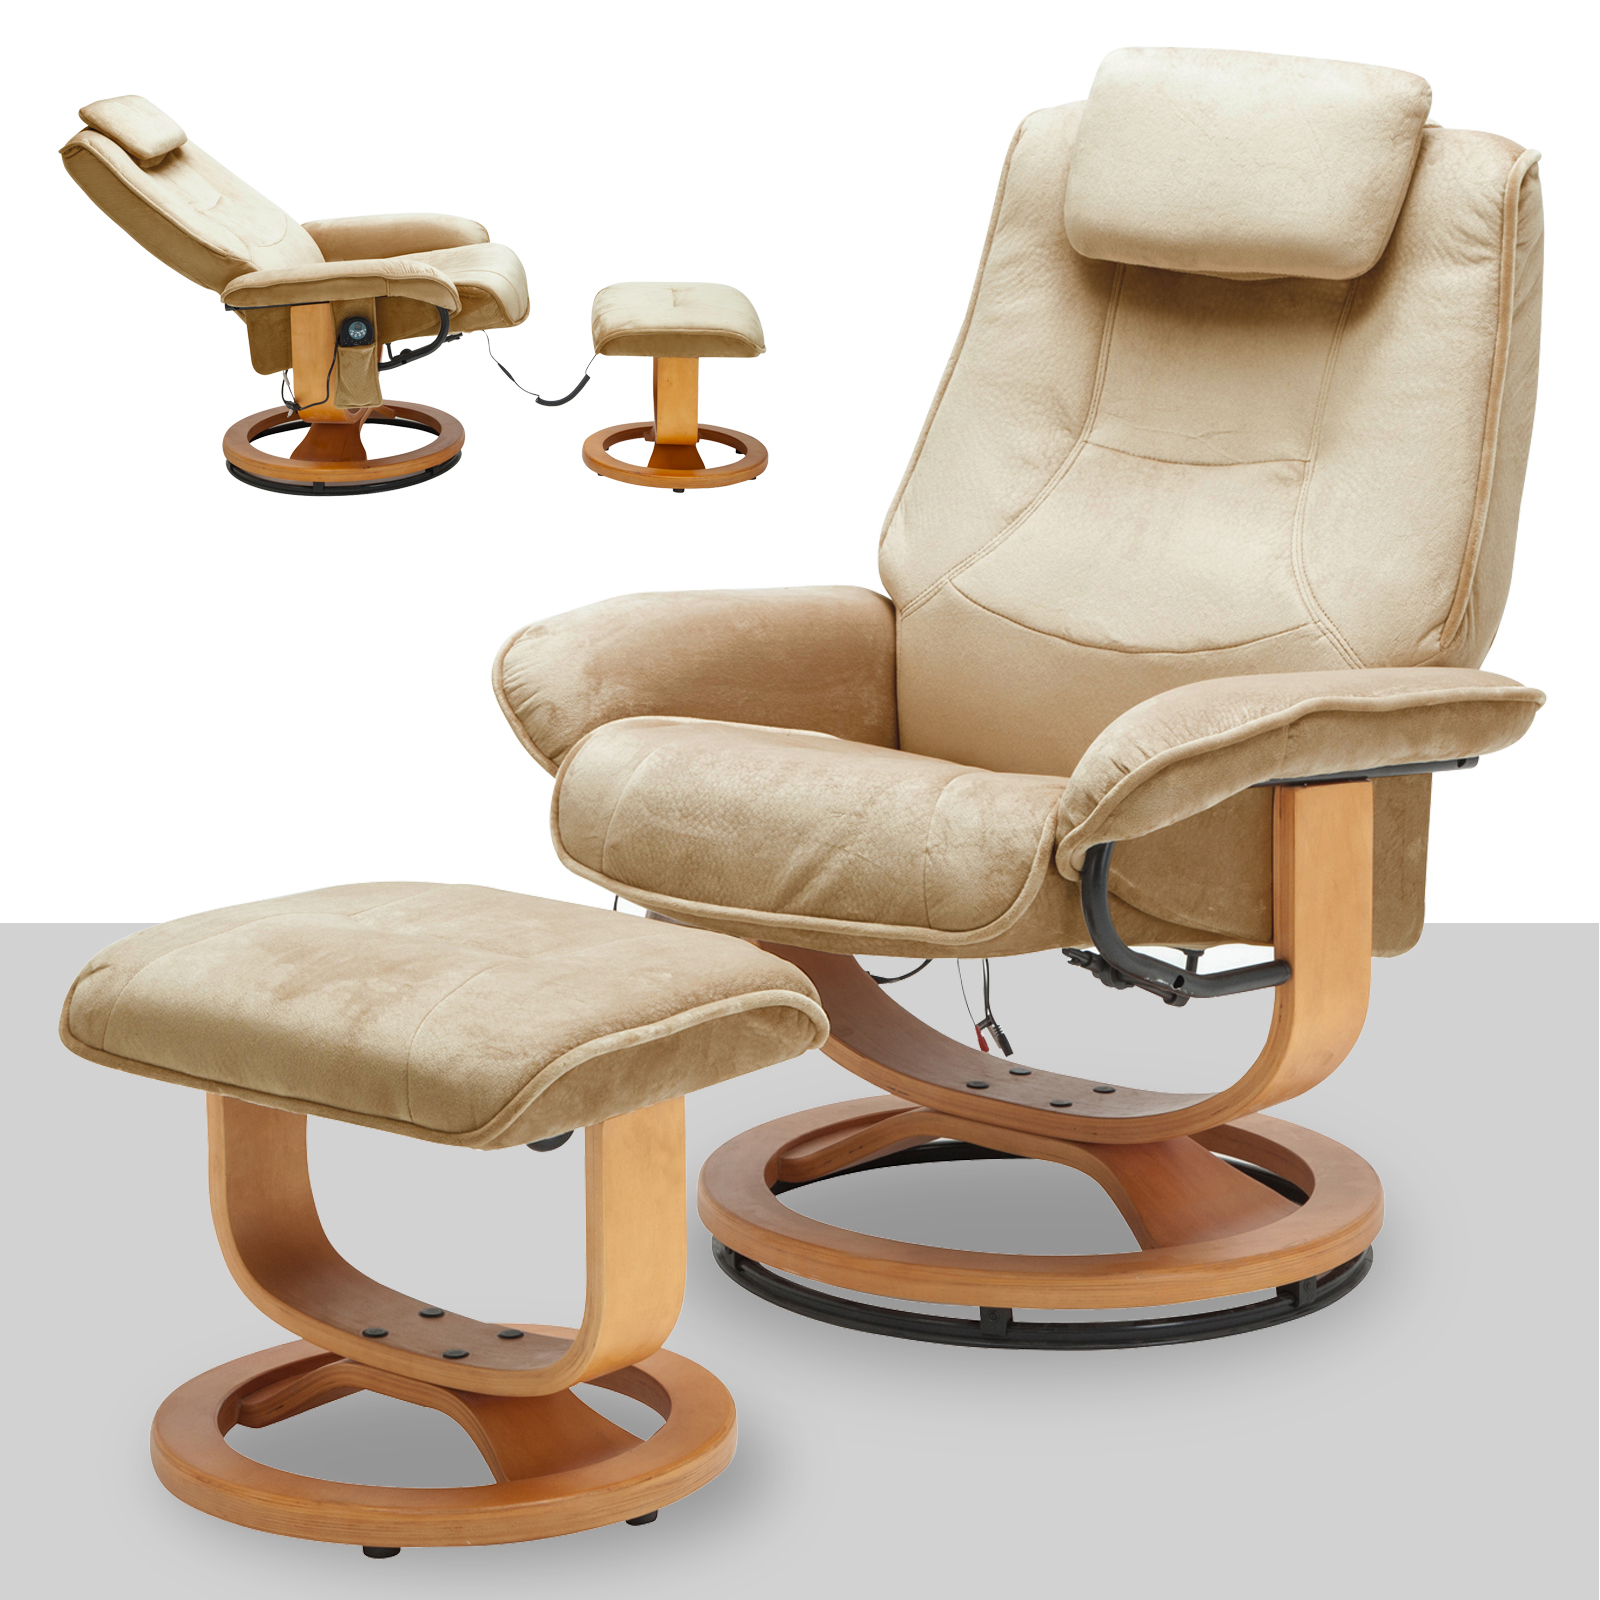 Motor Chair Leisure Recliner Chair 8 Motor Massage Faux Suede Armchair